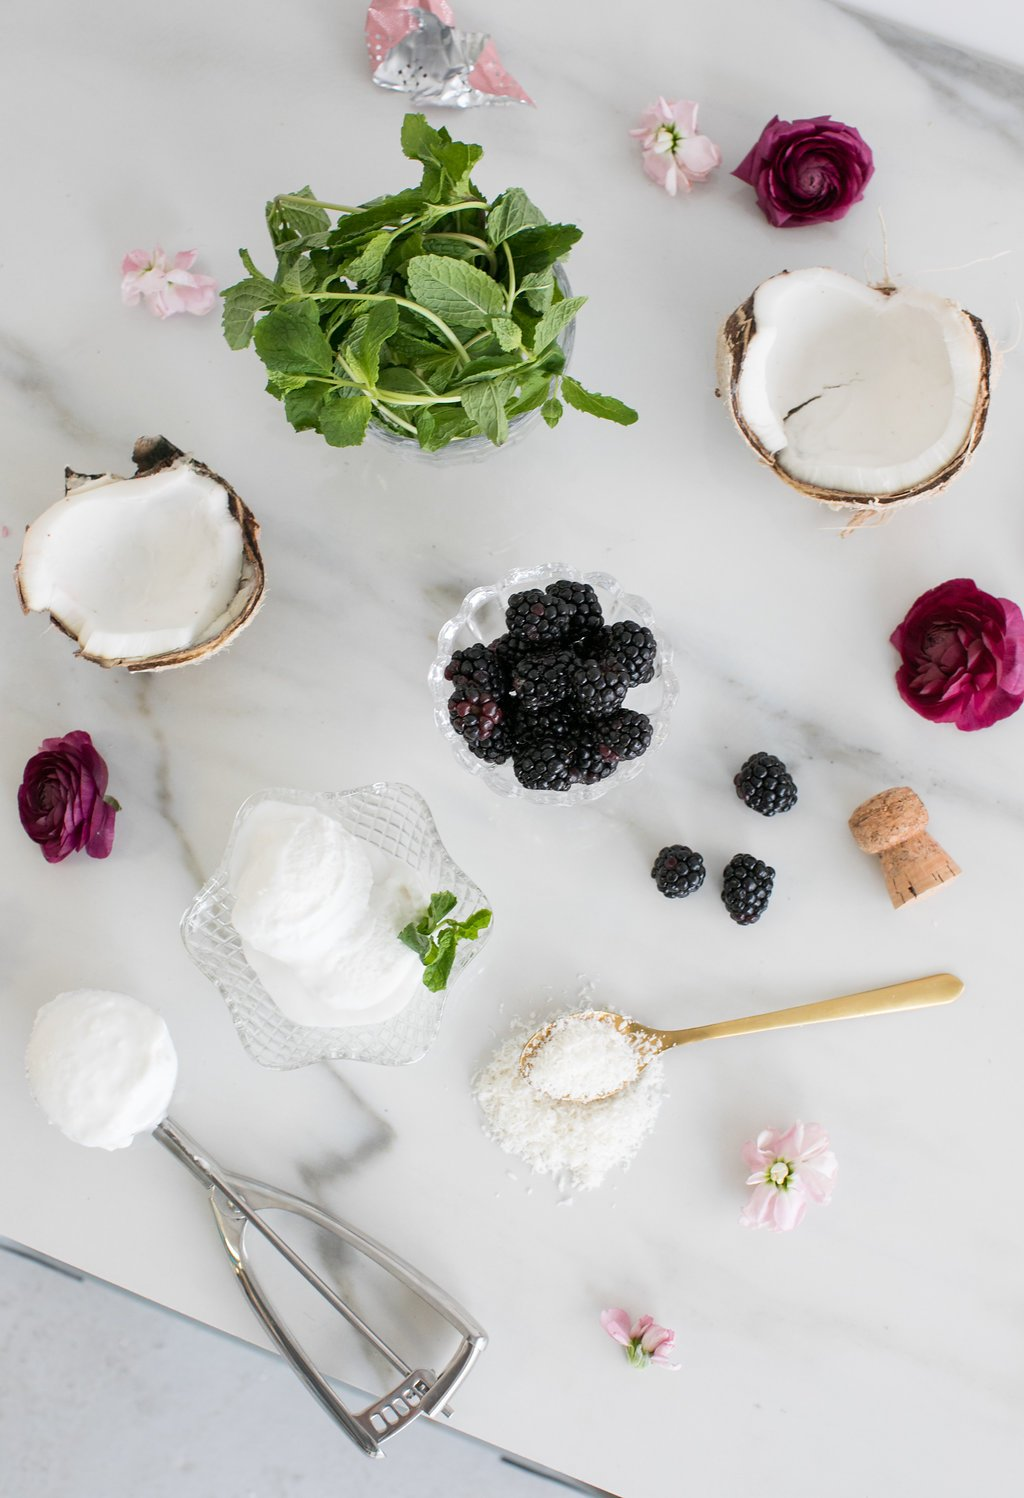 Ingredients for floats in dishes including sorbet and blackberries, with ice cream scooper and gold spoon